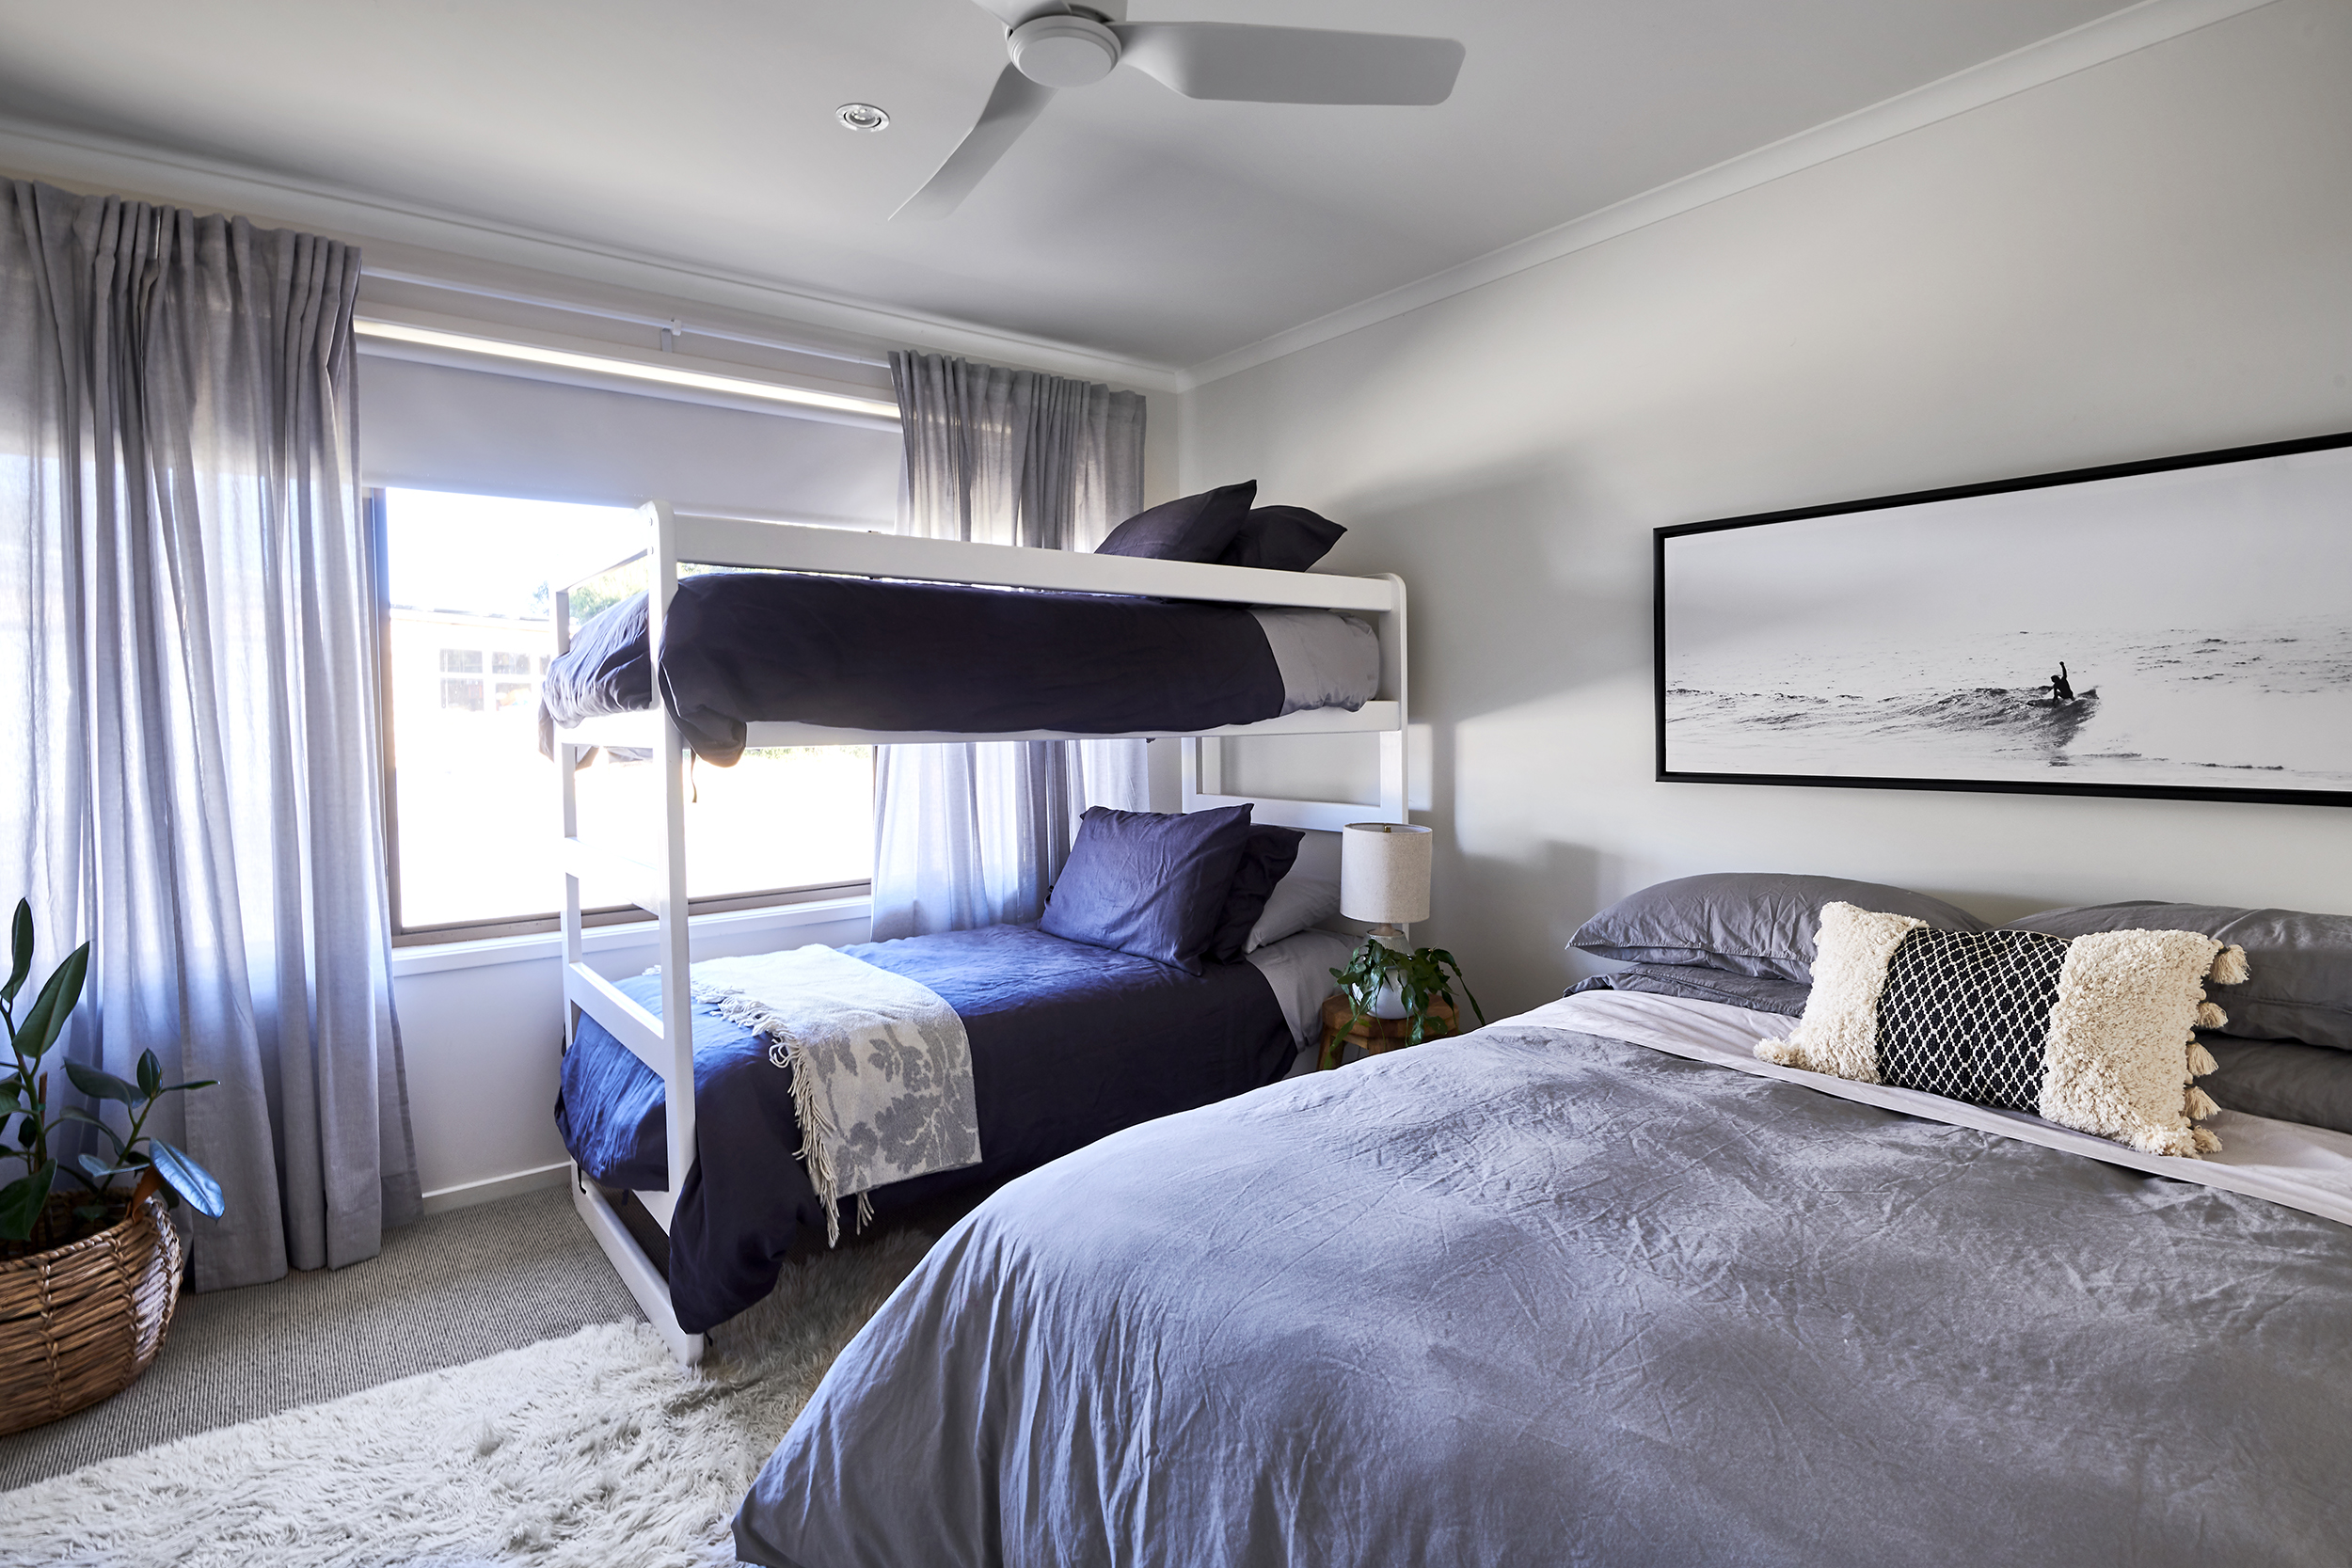 Sleep - The bedrooms are carefully curated with soft linens, comfortable beds, lush cushions and soothing textures throughout.